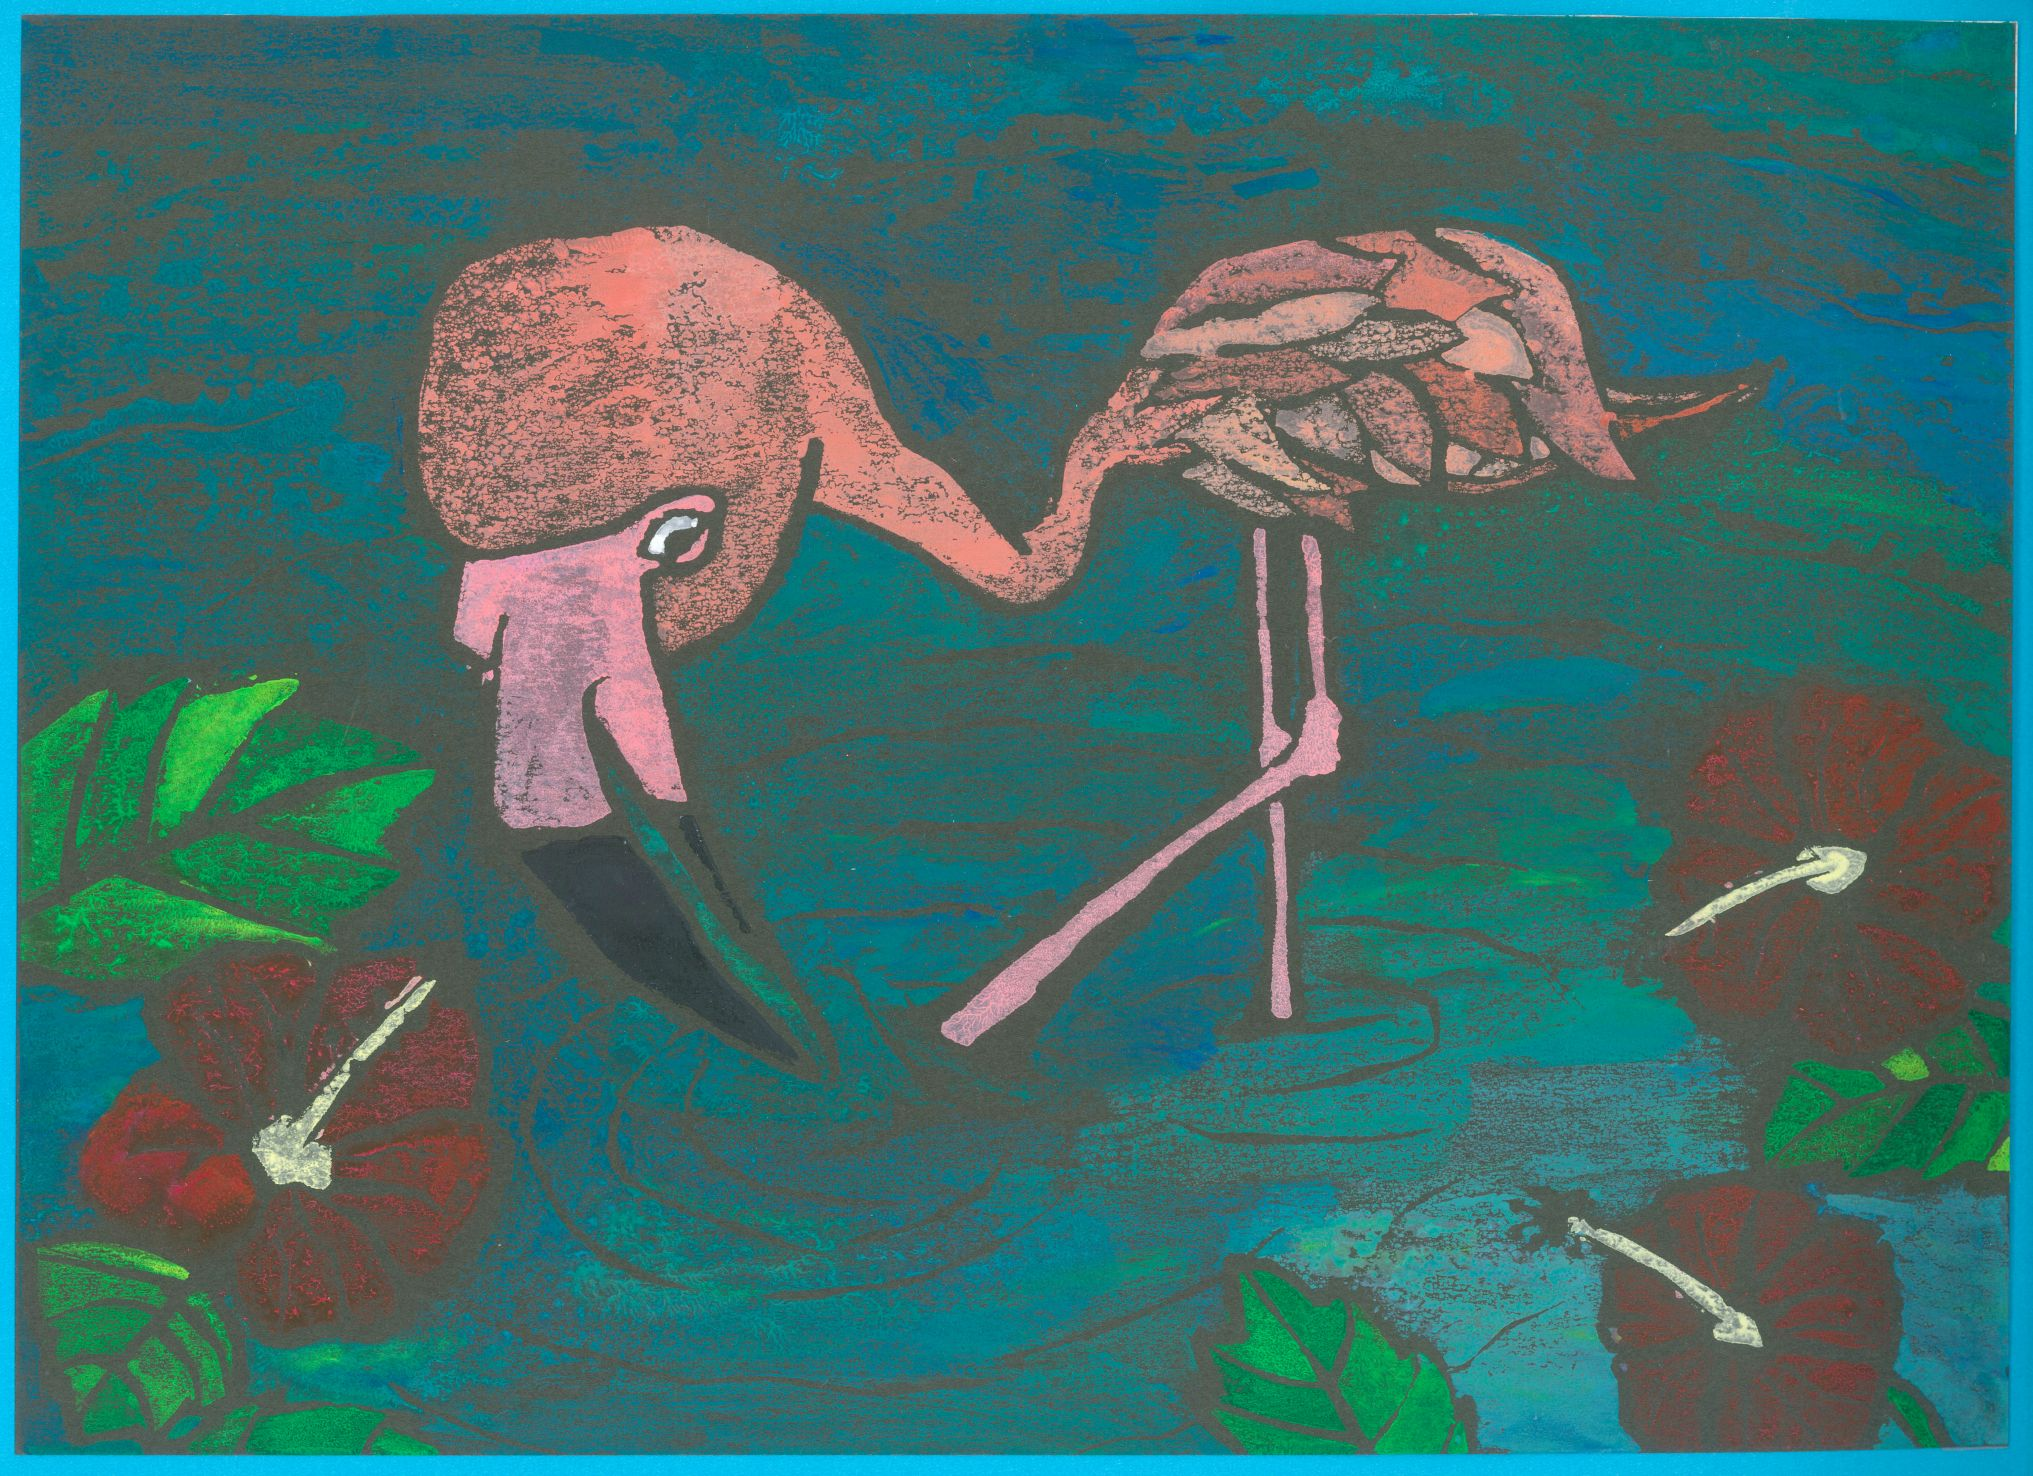 Dance floor for flamingo